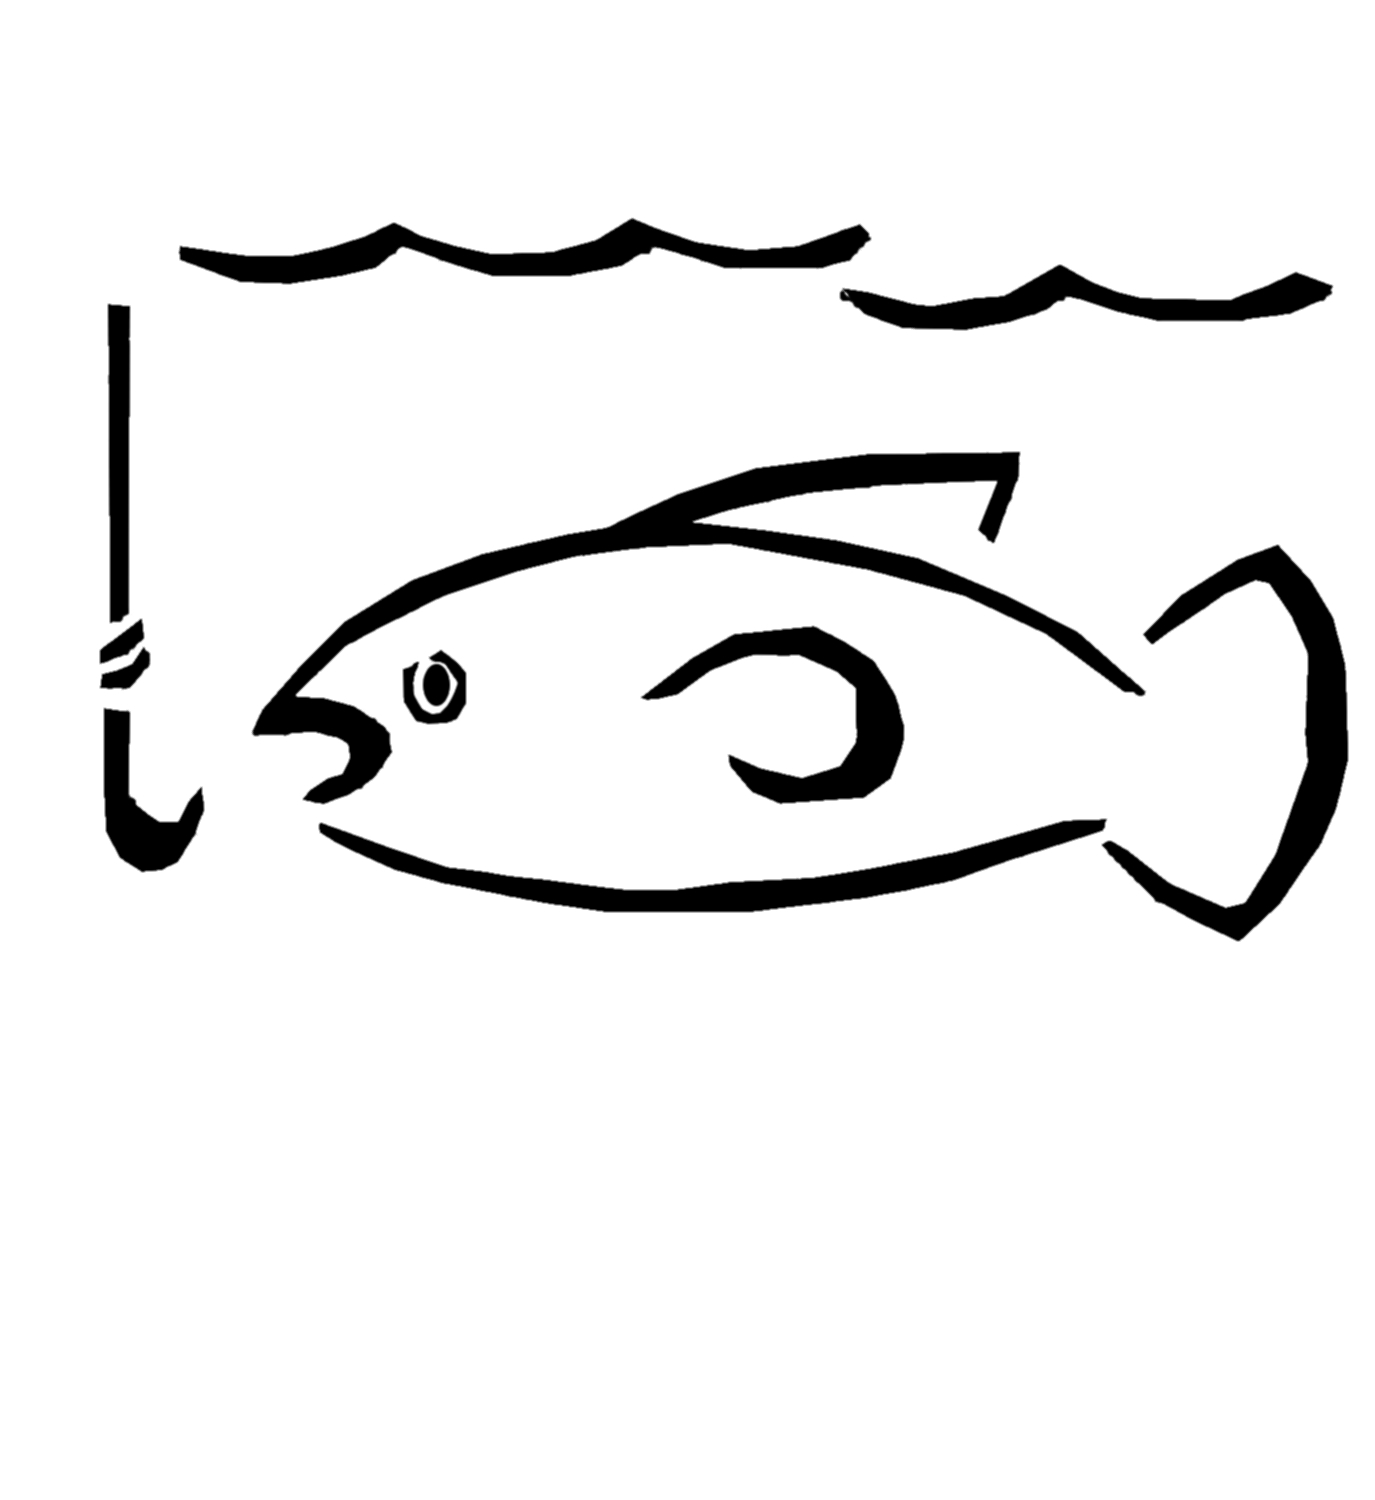 Free Fishing Hook Clipart, Download Free Clip Art, Free Clip.